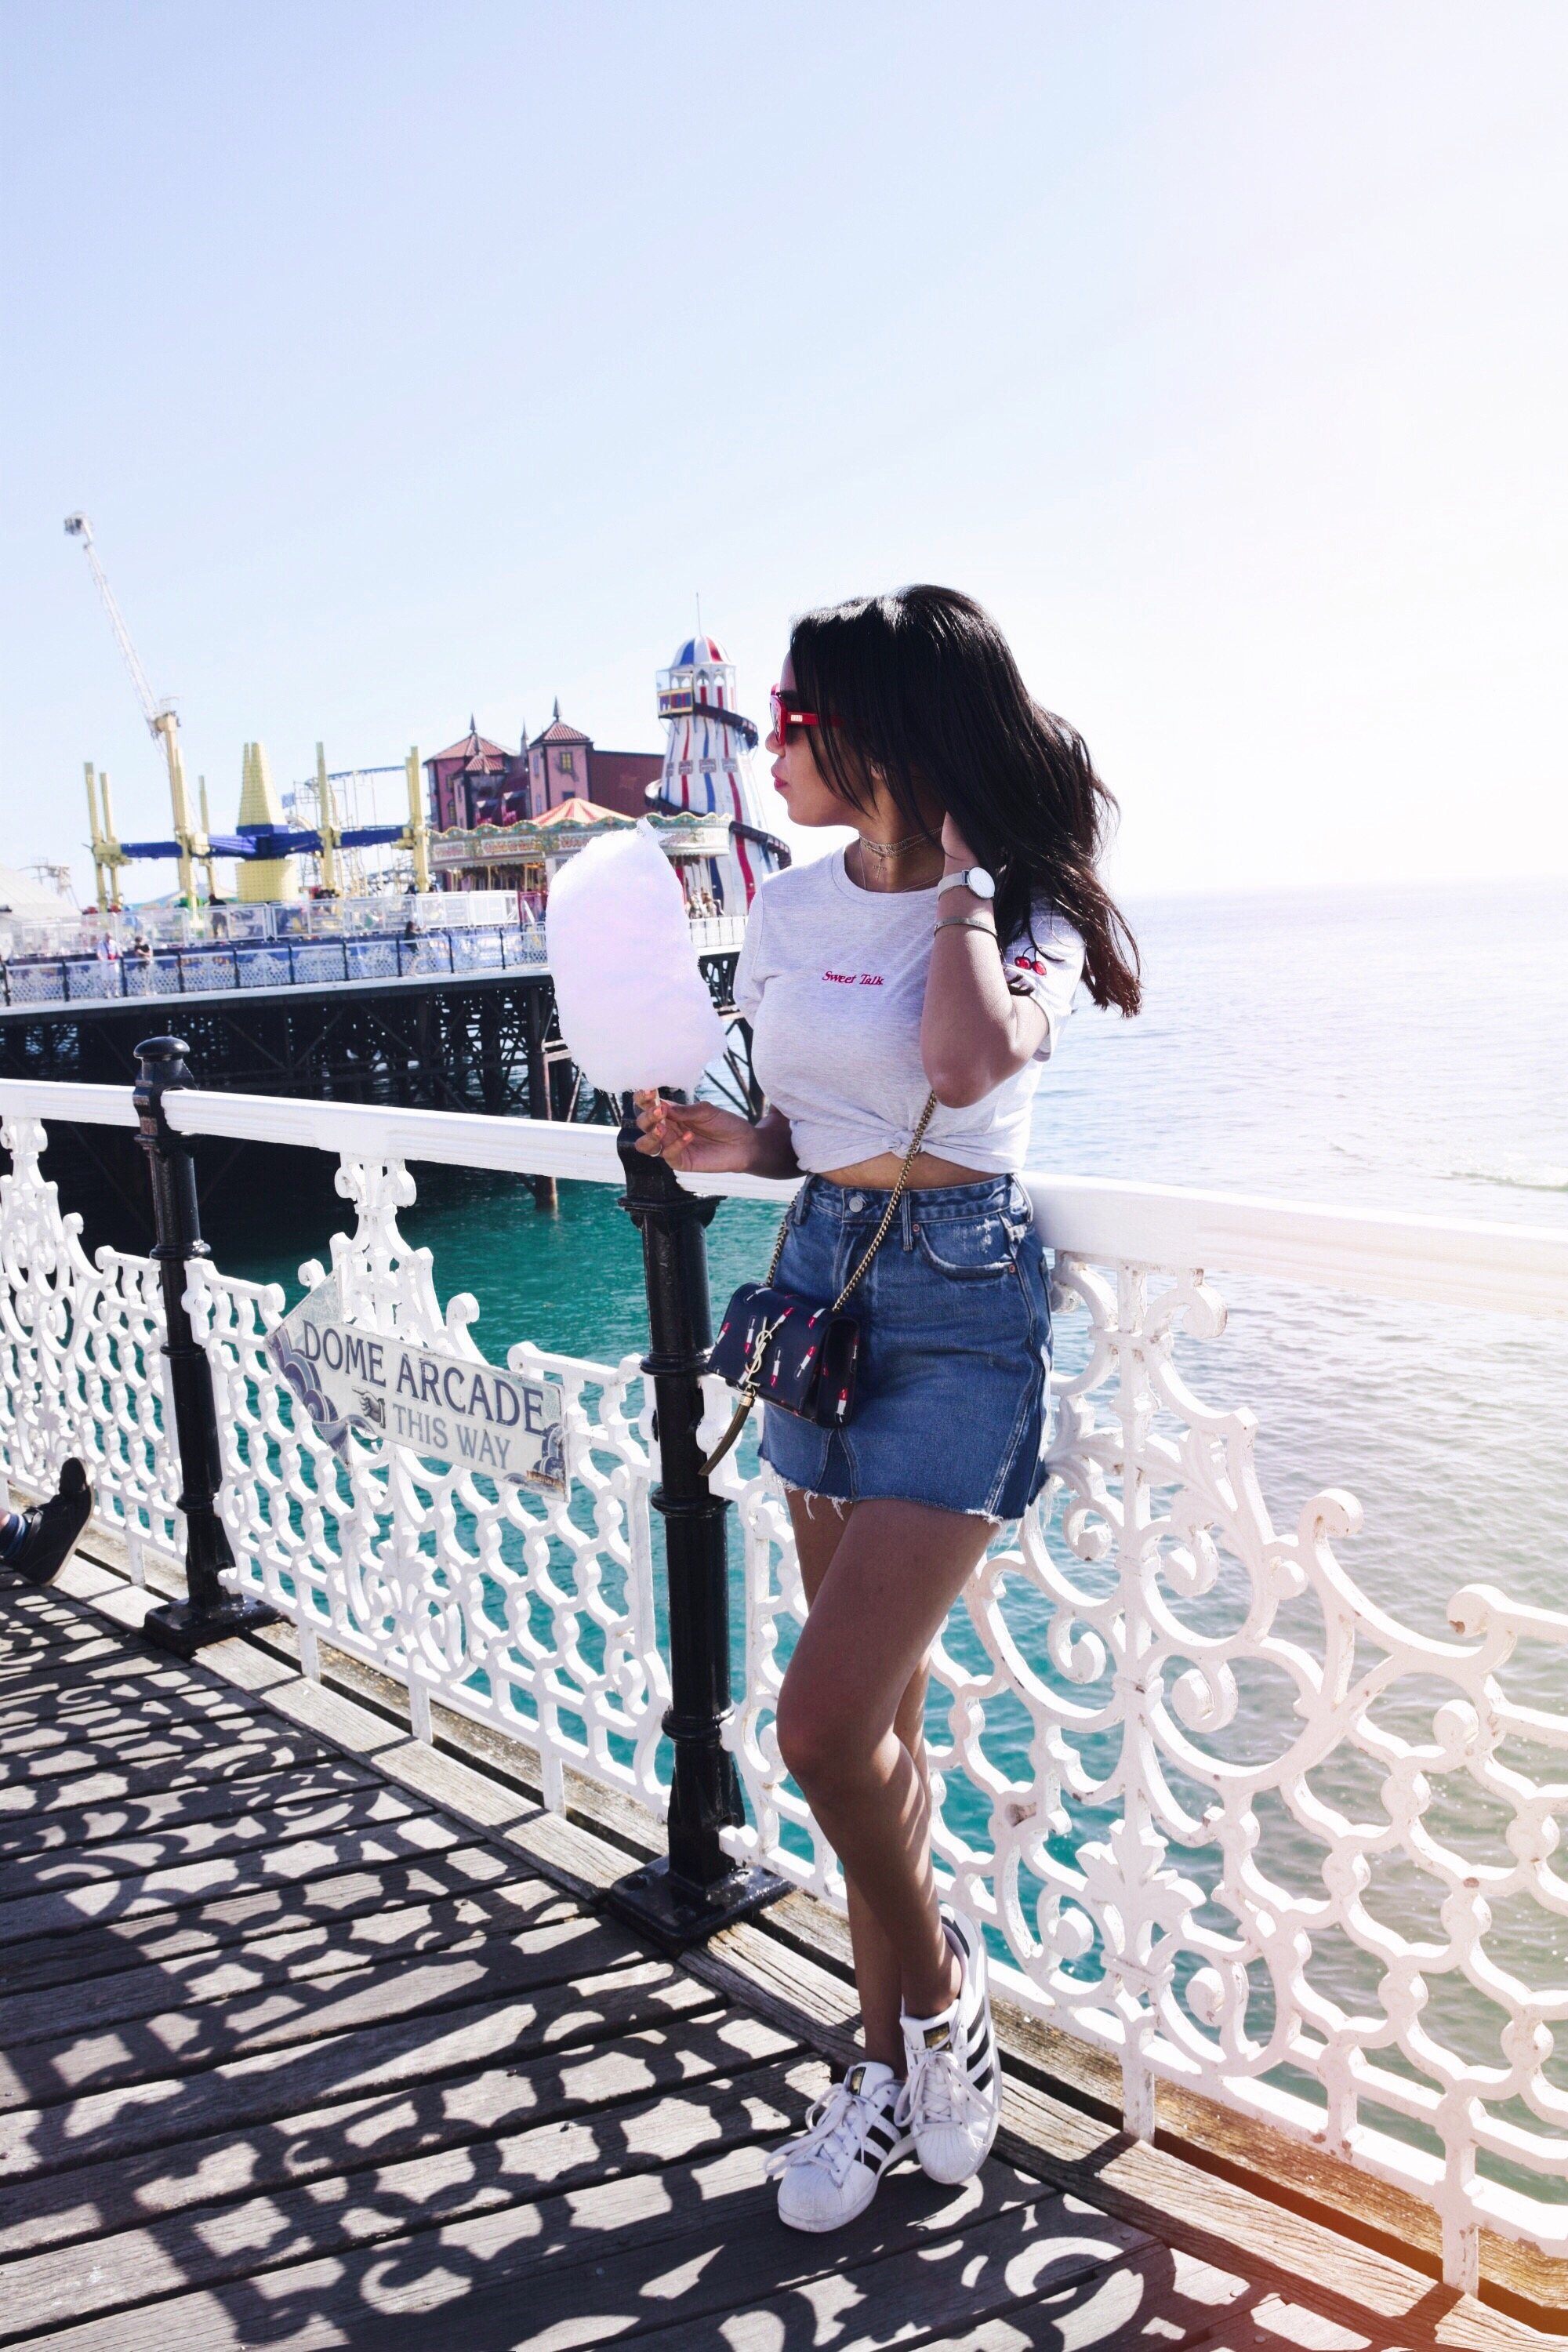 The Brighton Pier // Los Angeles Fashion Blogger Daphne Blunt // Brighton, England Summer Style // England Travel Diary Fashion Blogger // Saint Laurent Lipstick Bag YSL // GRLFRND Denim Skirt // Crap Eyewear Red Cateye Sunglasses // Adidas Originals // Topshop T-shirt: To Style, With Love